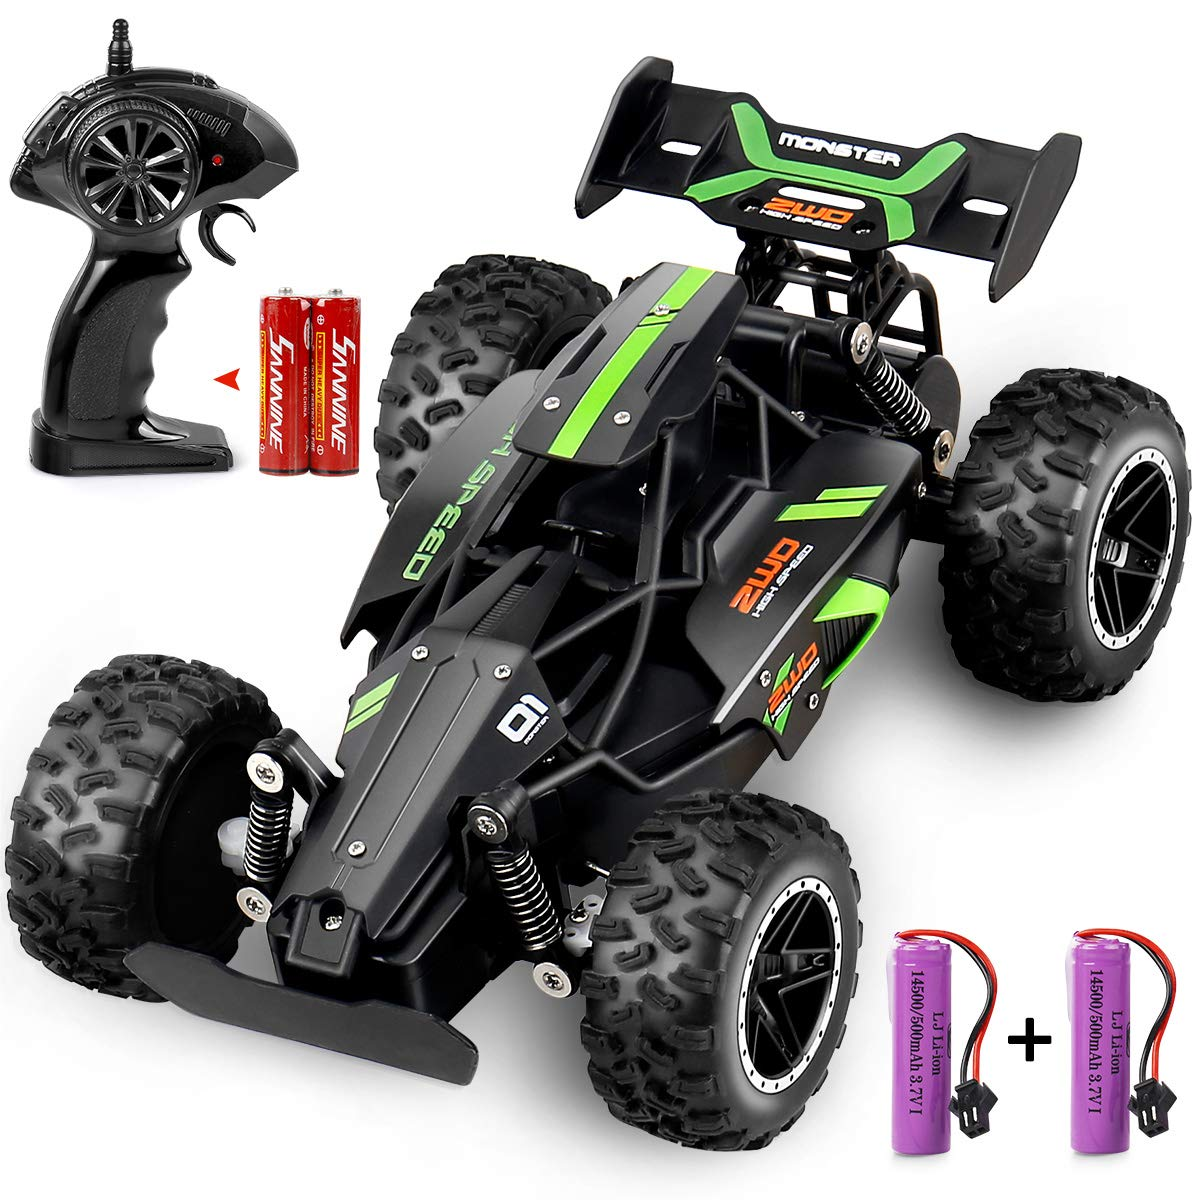 Outerman RC Car 1:18 Scale 2.4Ghz Remote Control Trucks, 15-20 km/h High Speed Racing Car with 2 Rechargeable Lithium Ion Batteries, Electric Toy Car for All Adults & Kids (Black+Green)